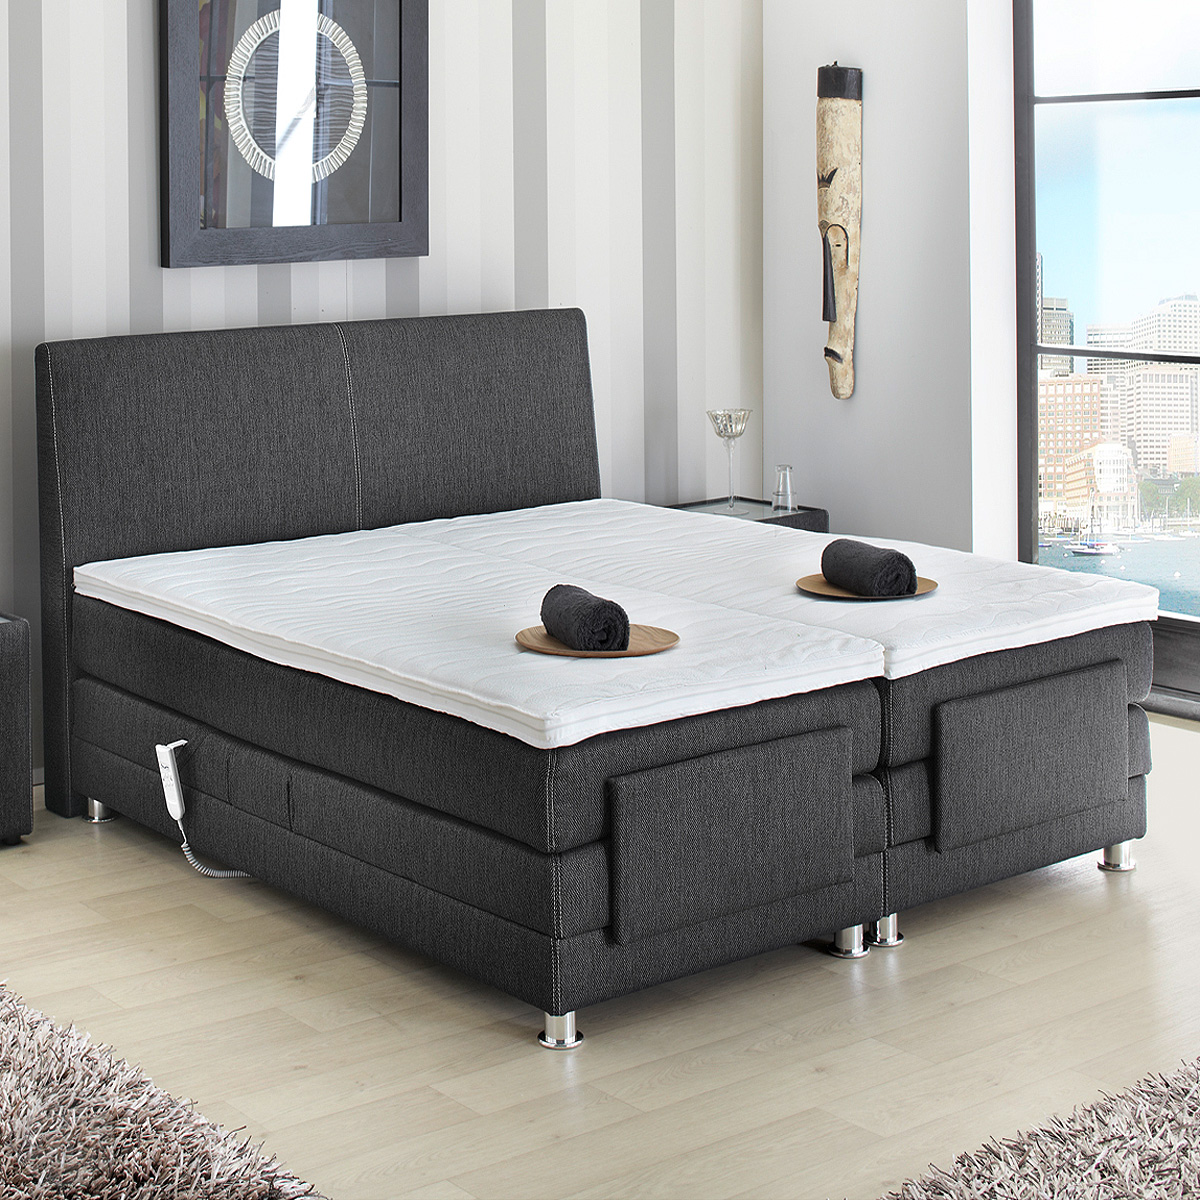 boxspring bett raffinetto doppelbett hotelbett schwarz. Black Bedroom Furniture Sets. Home Design Ideas